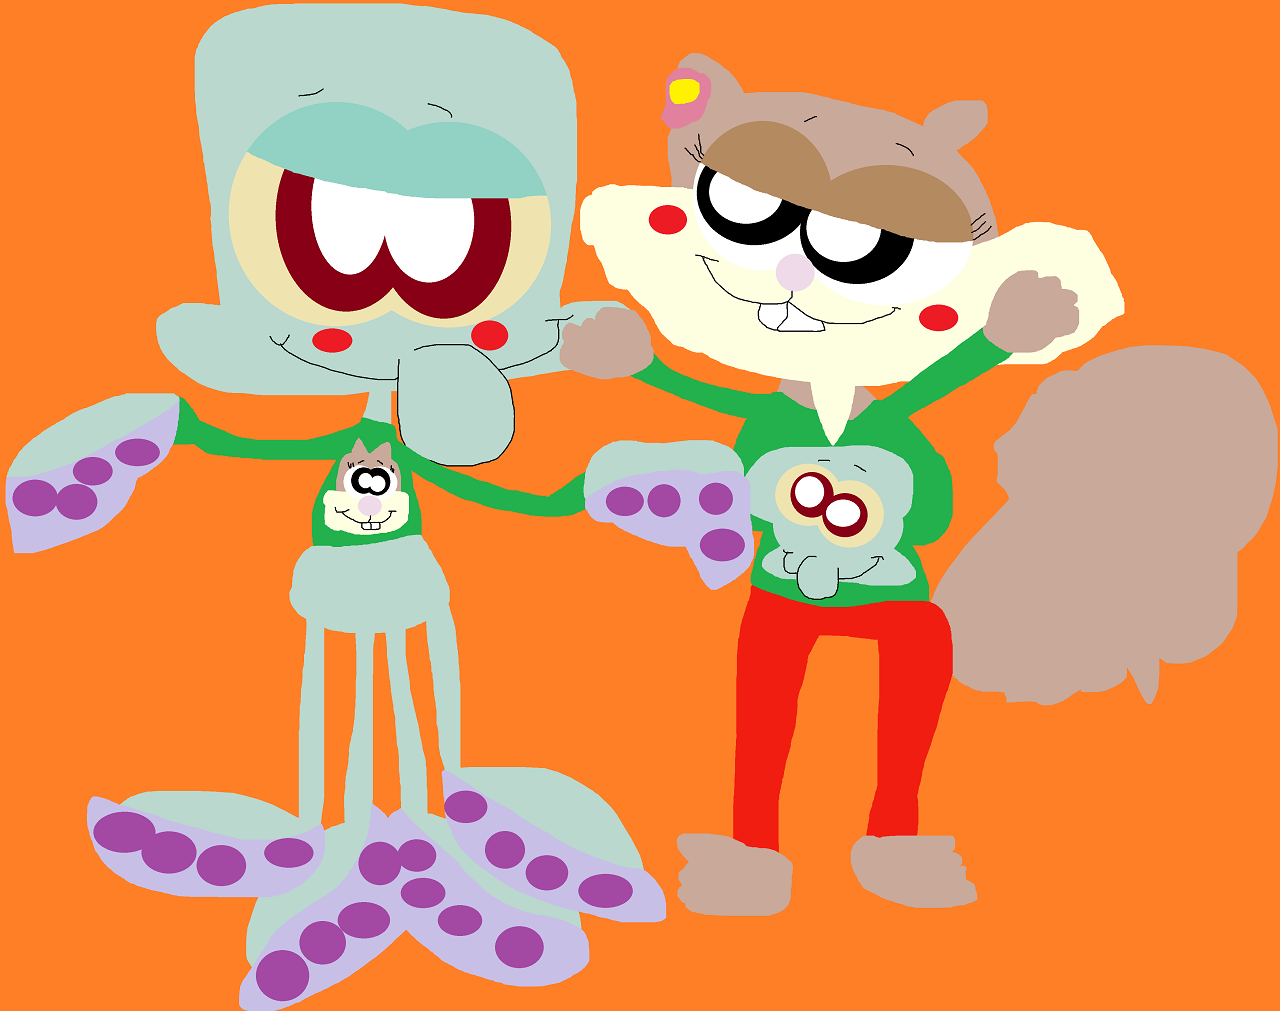 Cute Xmas Sweaters For Squidward And Sandy by Falconlobo